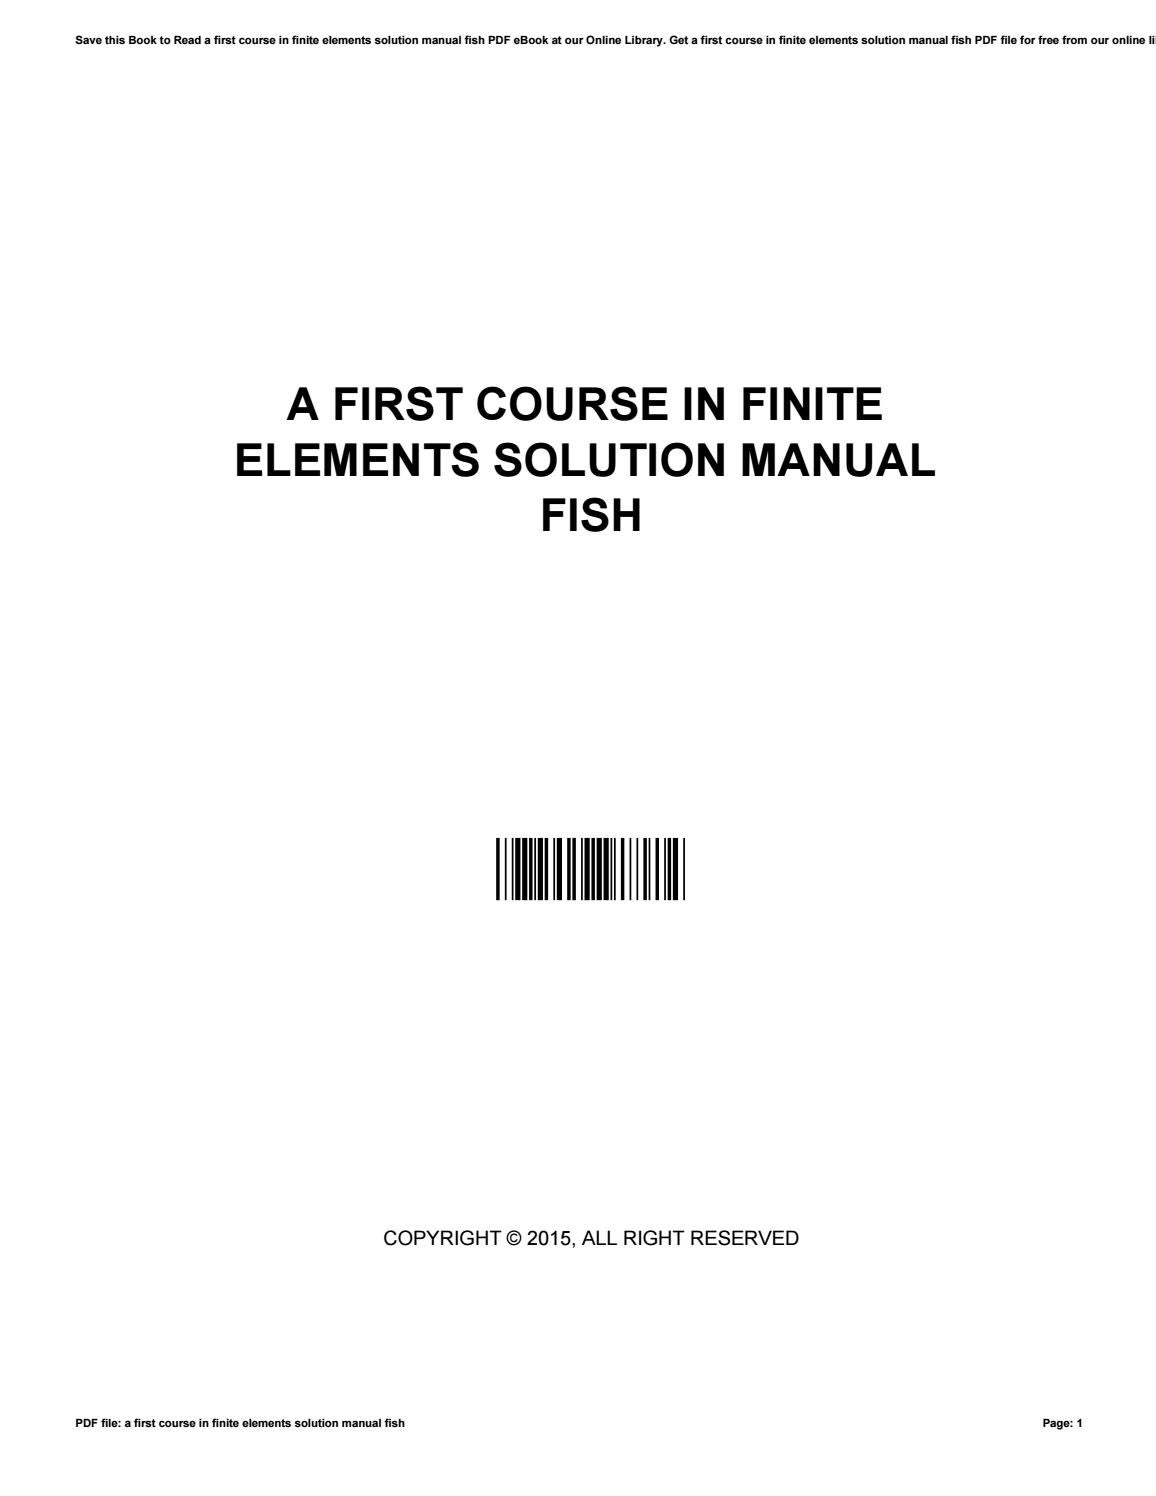 A first course in finite elements solution manual fish by AnneStutzman2149  - issuu